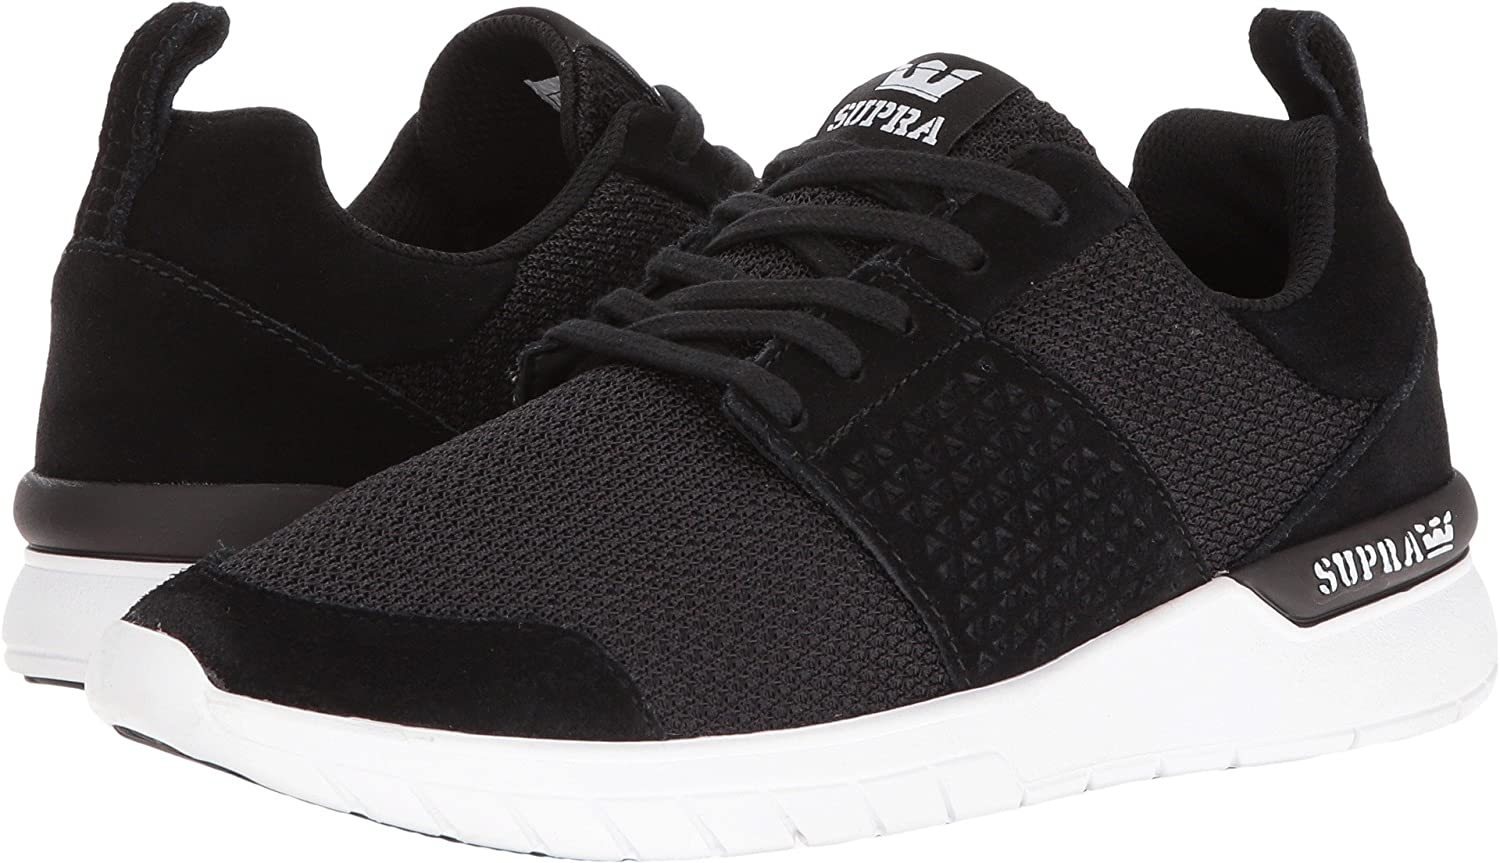 Supra Women's Scissor '18 Shoes B01EIIMUQ6 6 M US|Black Reflective White